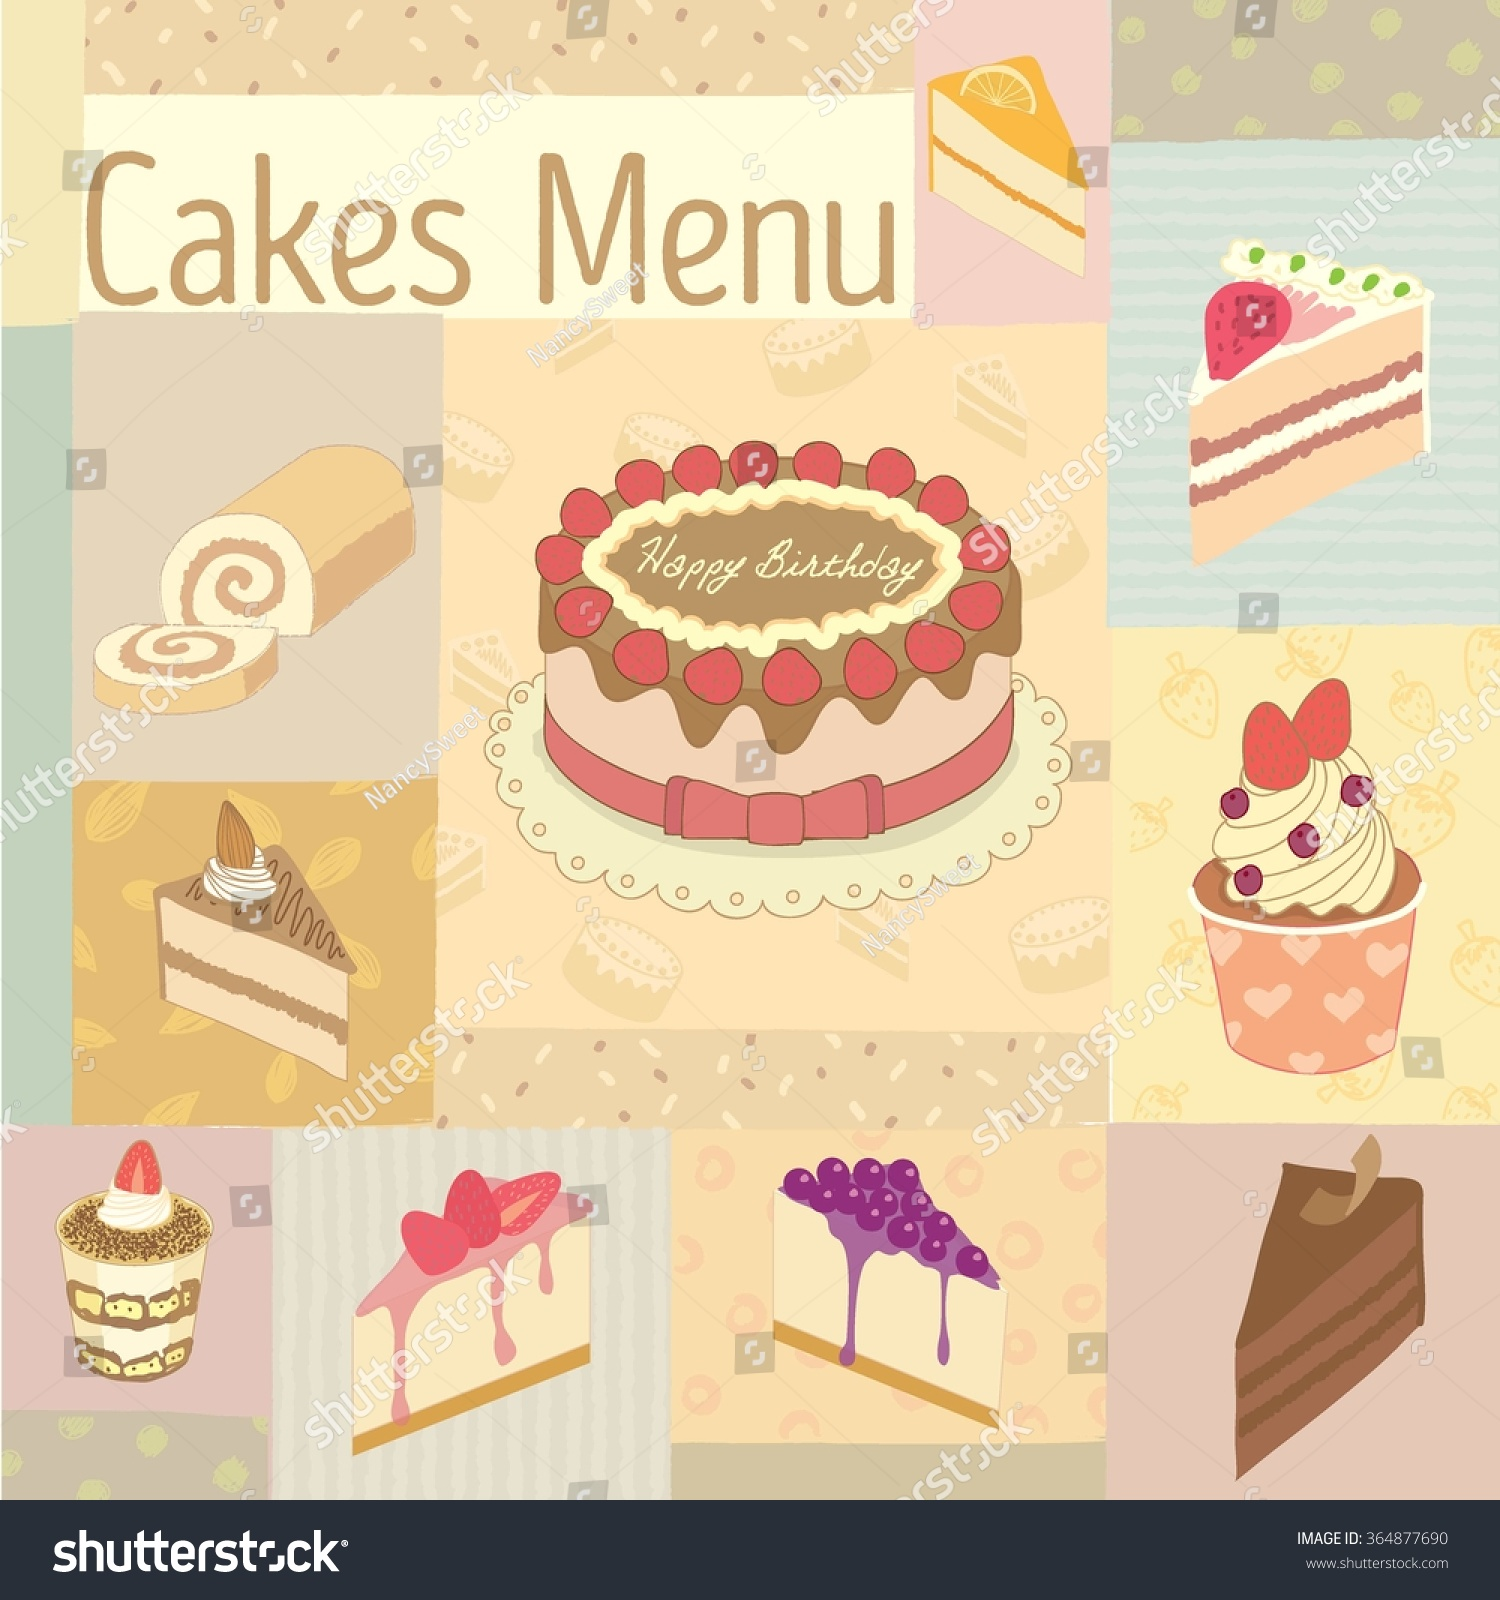 vector drawing cakes menu bakery cafevintage stock vector